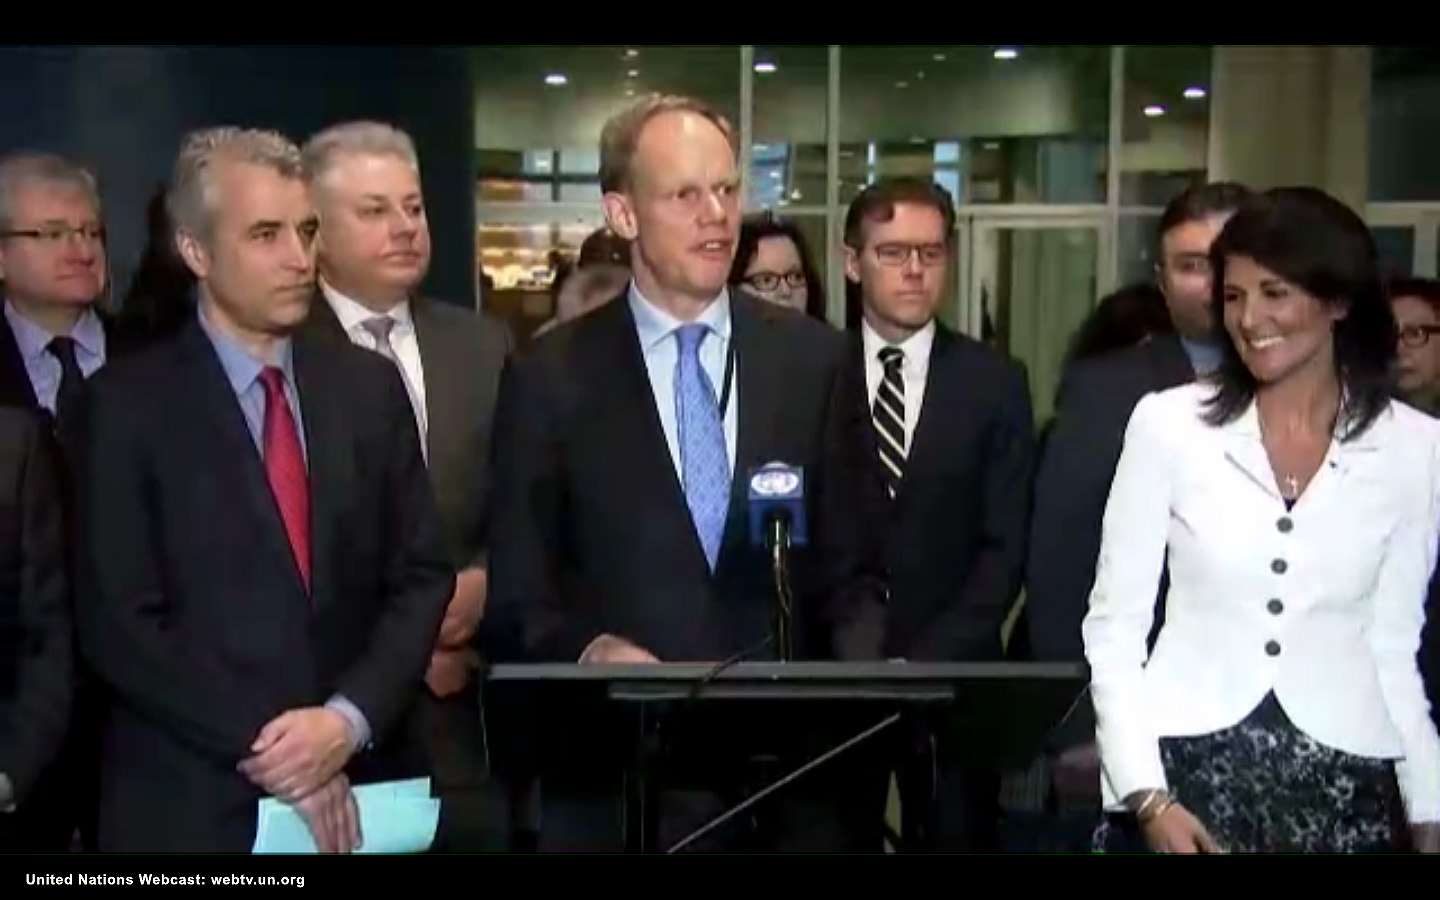 Matthew Rycroft, UK Ambassador to the UN stands beside US Ambassador to the UN Nikki Hayley at a press conference to protest the opening day of the UN Ban Treaty Negotiations, March 2017.